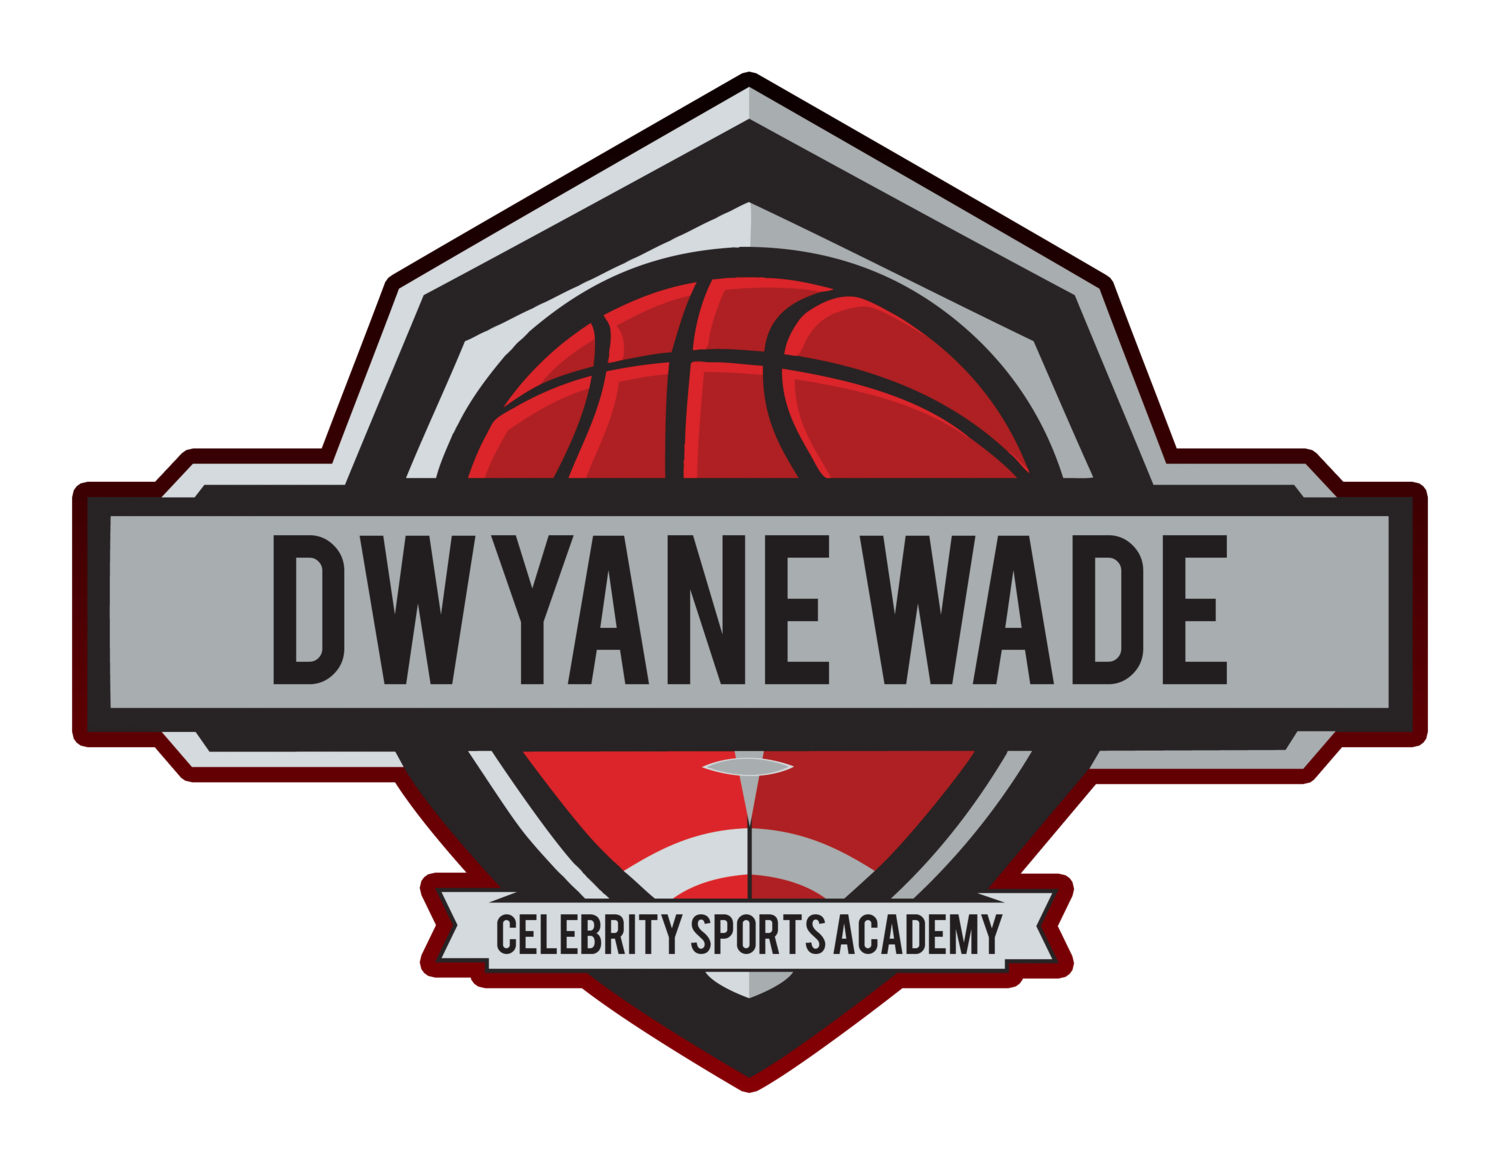 Dwyane Wade Celebrity Sports Academy